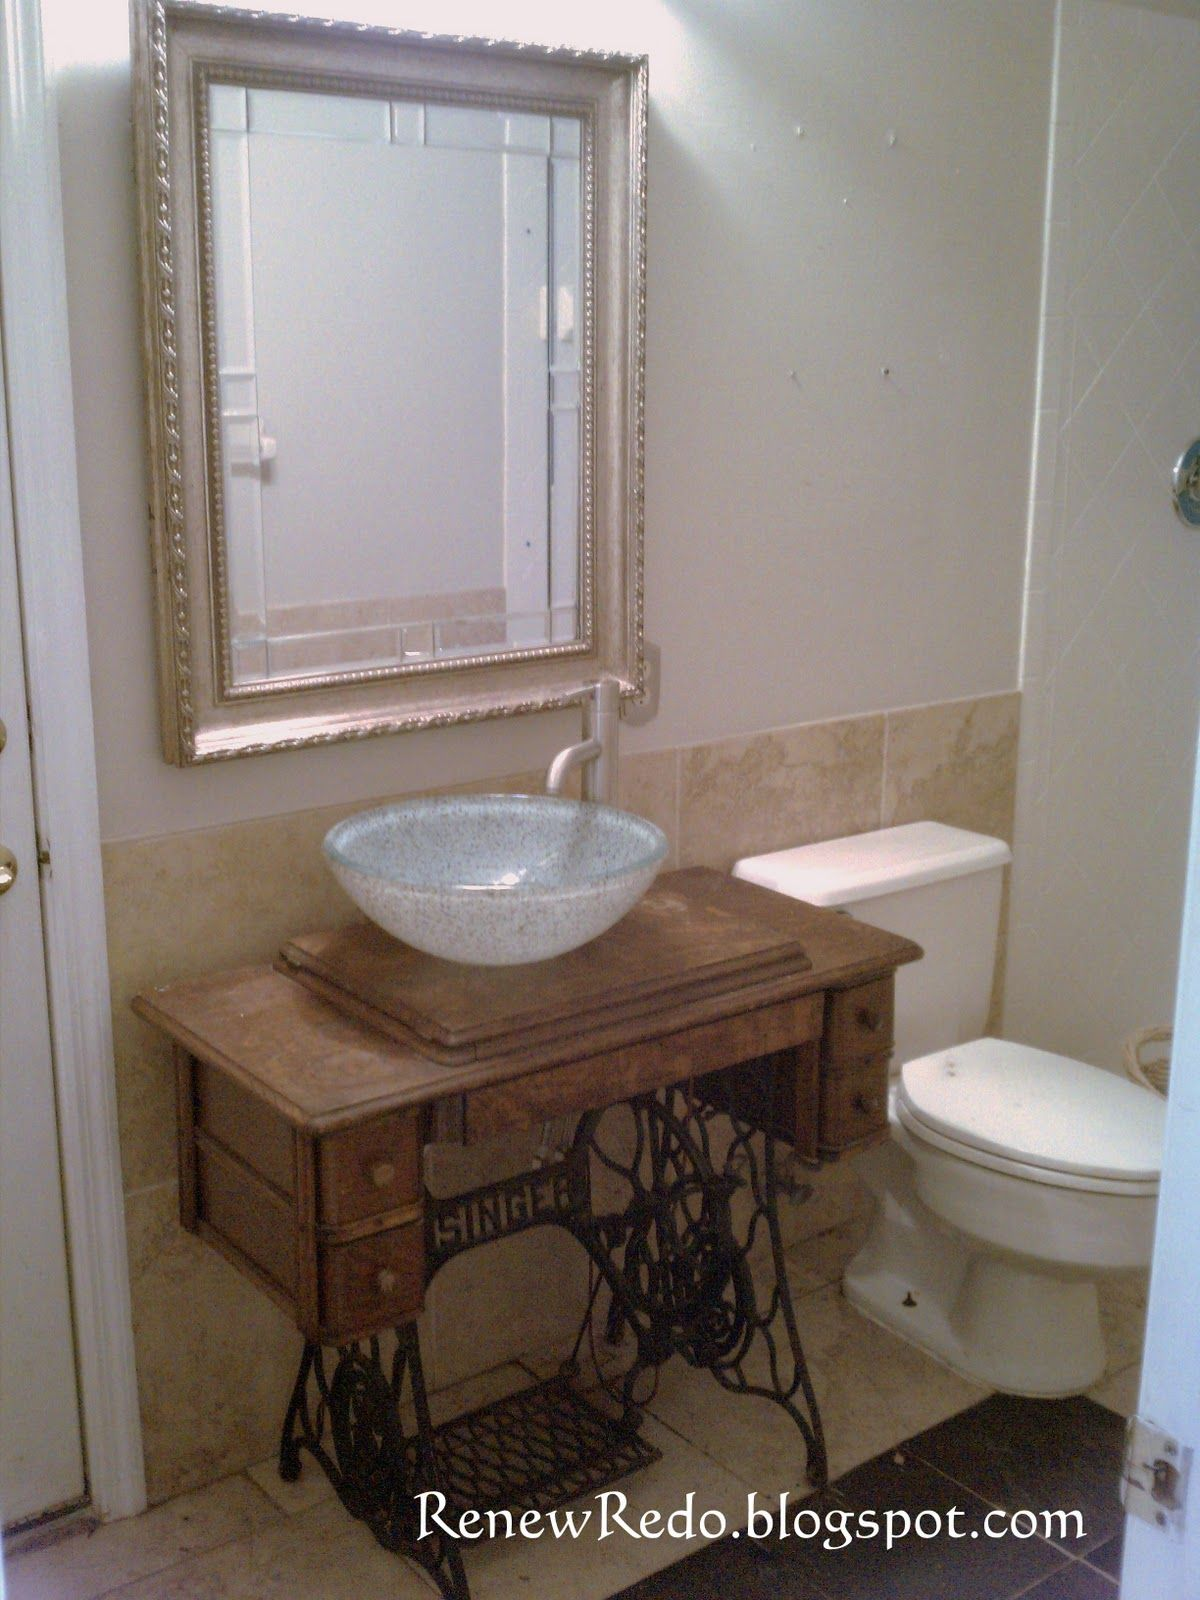 Sewing Machine Sink For The Home Pinterest Sinks